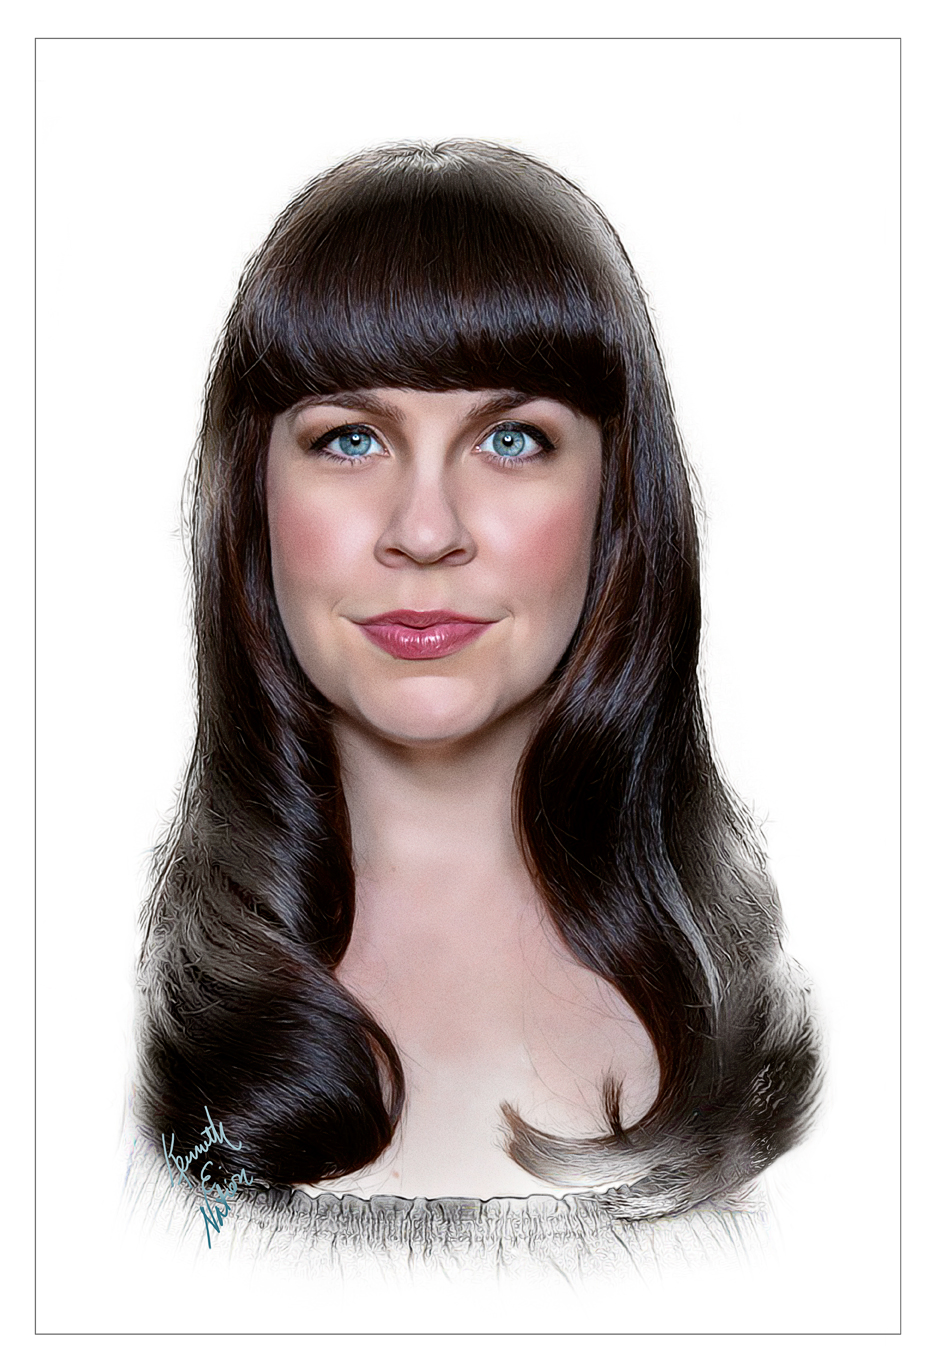 Caitlin Doughty by kenernest63a